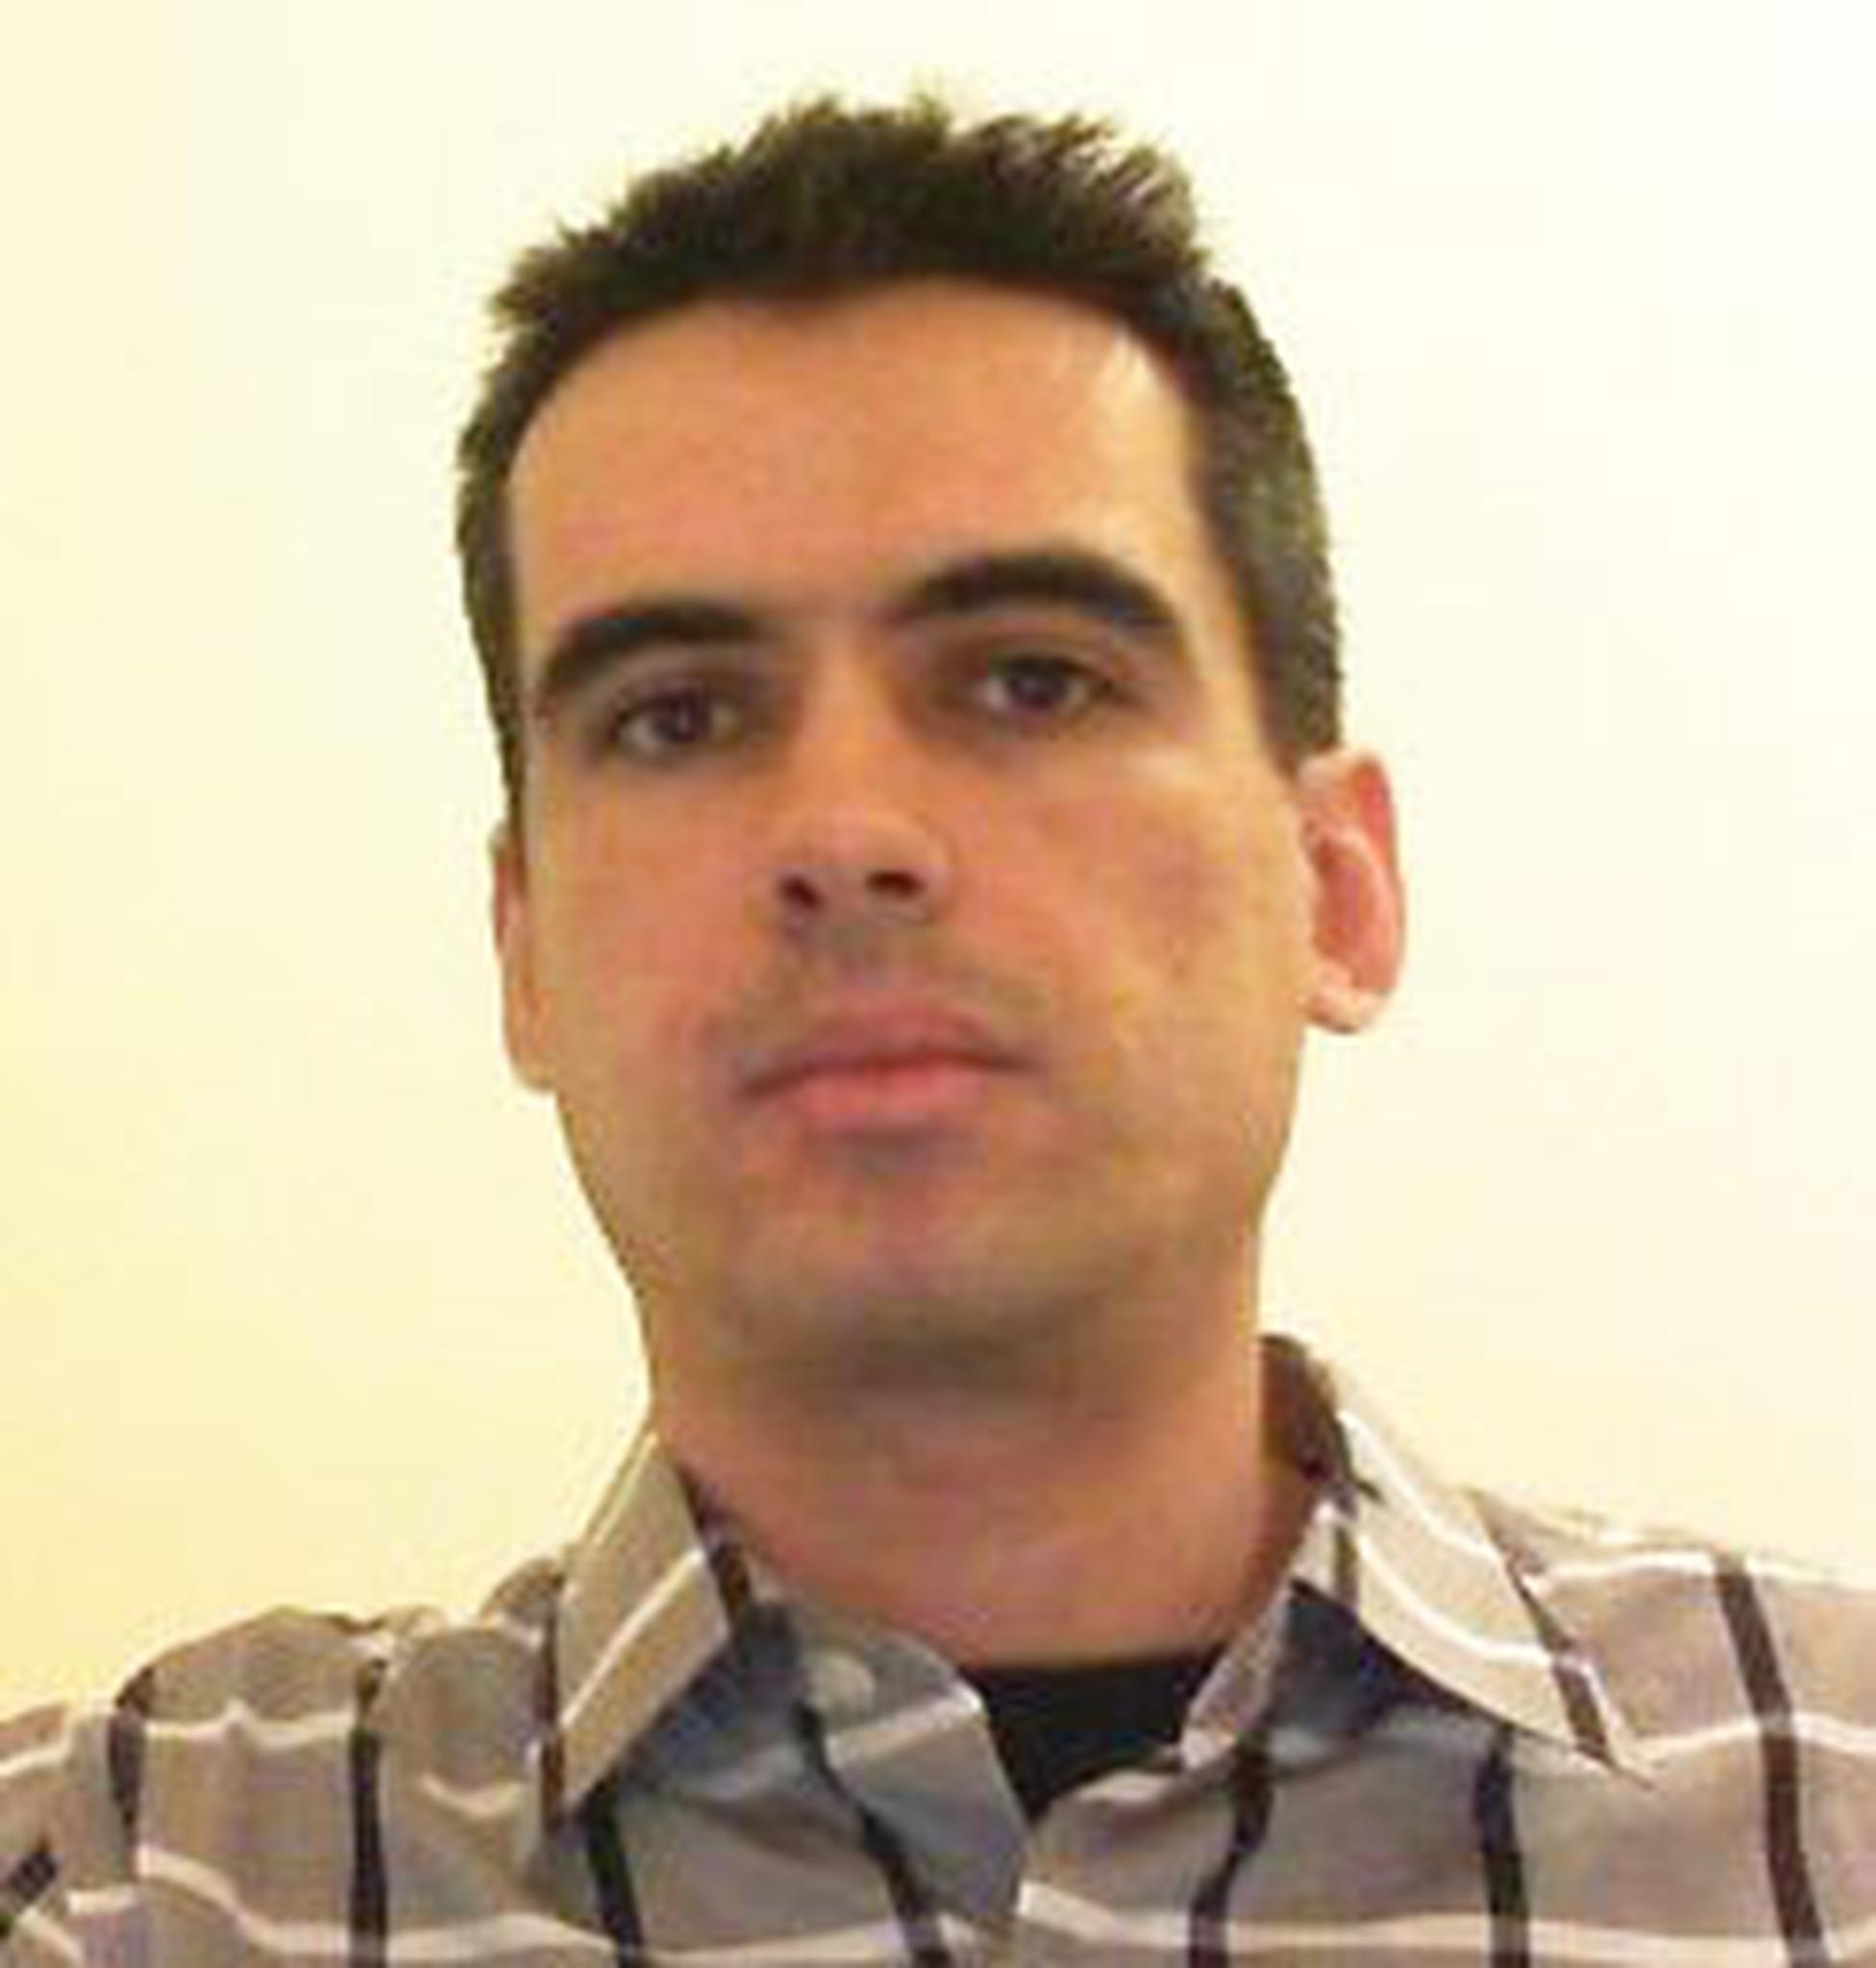 Paulo Anciães is a research fellow at  University College London's Centre for Transport Studies